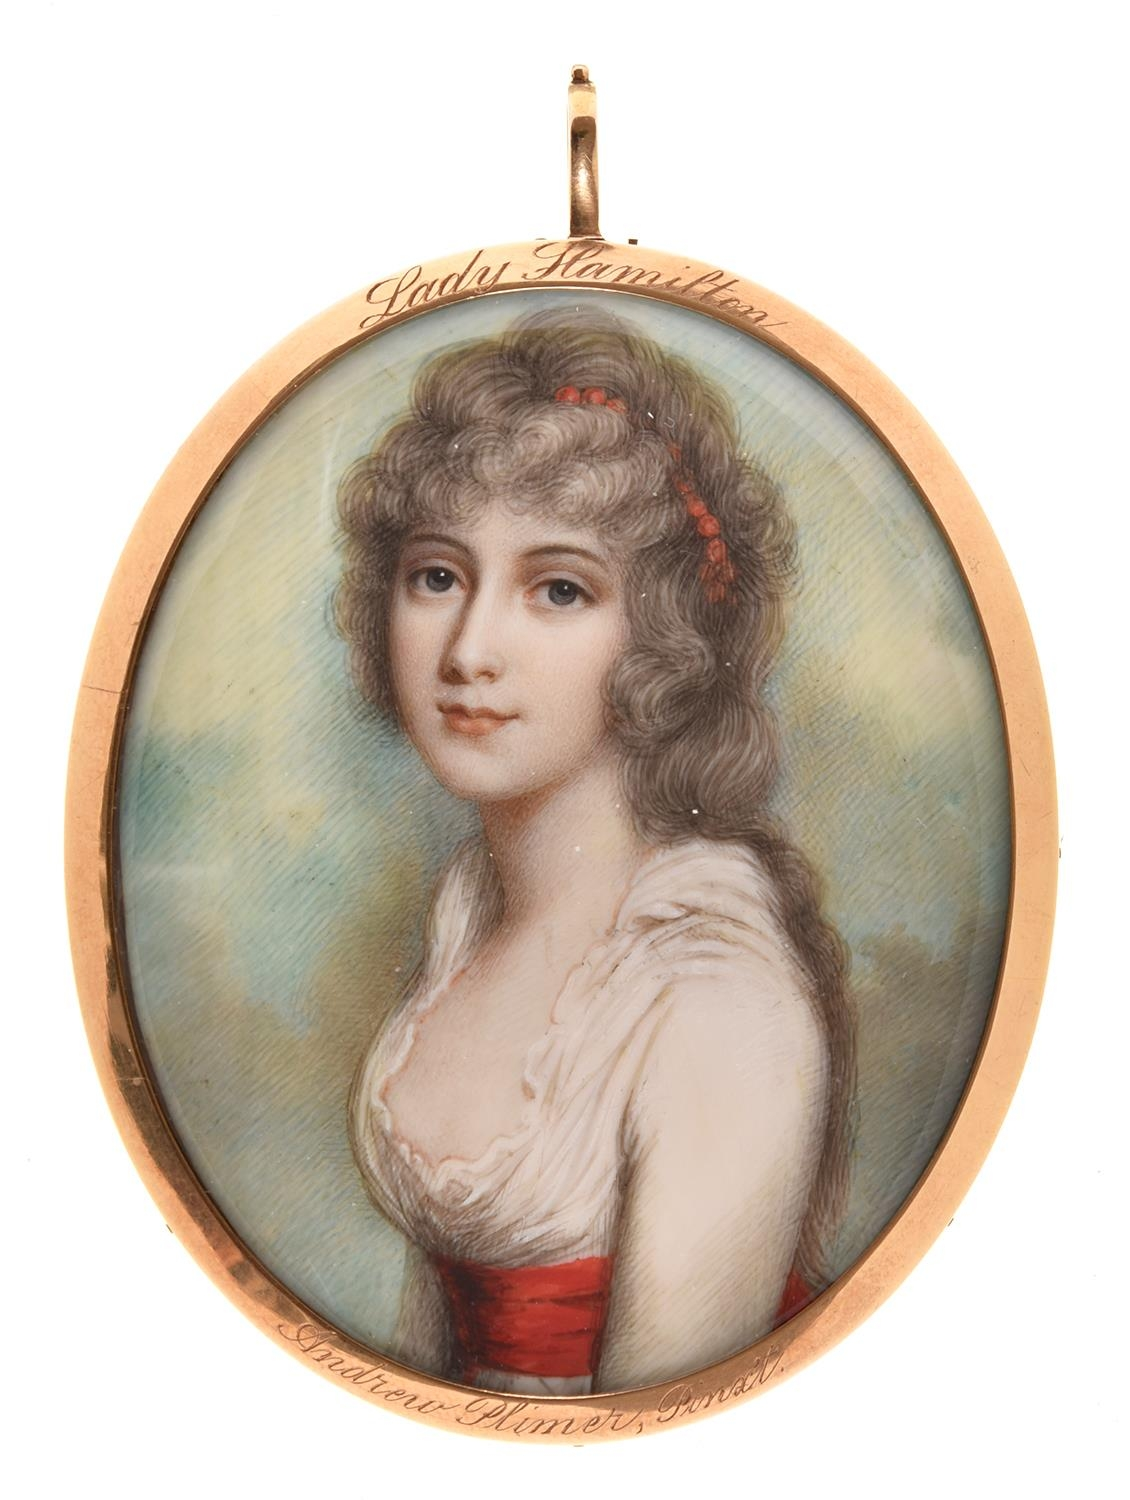 Andrew Plimer (1763-1837) - Portrait Miniature of Emma Lady Hamilton, in white dress with red